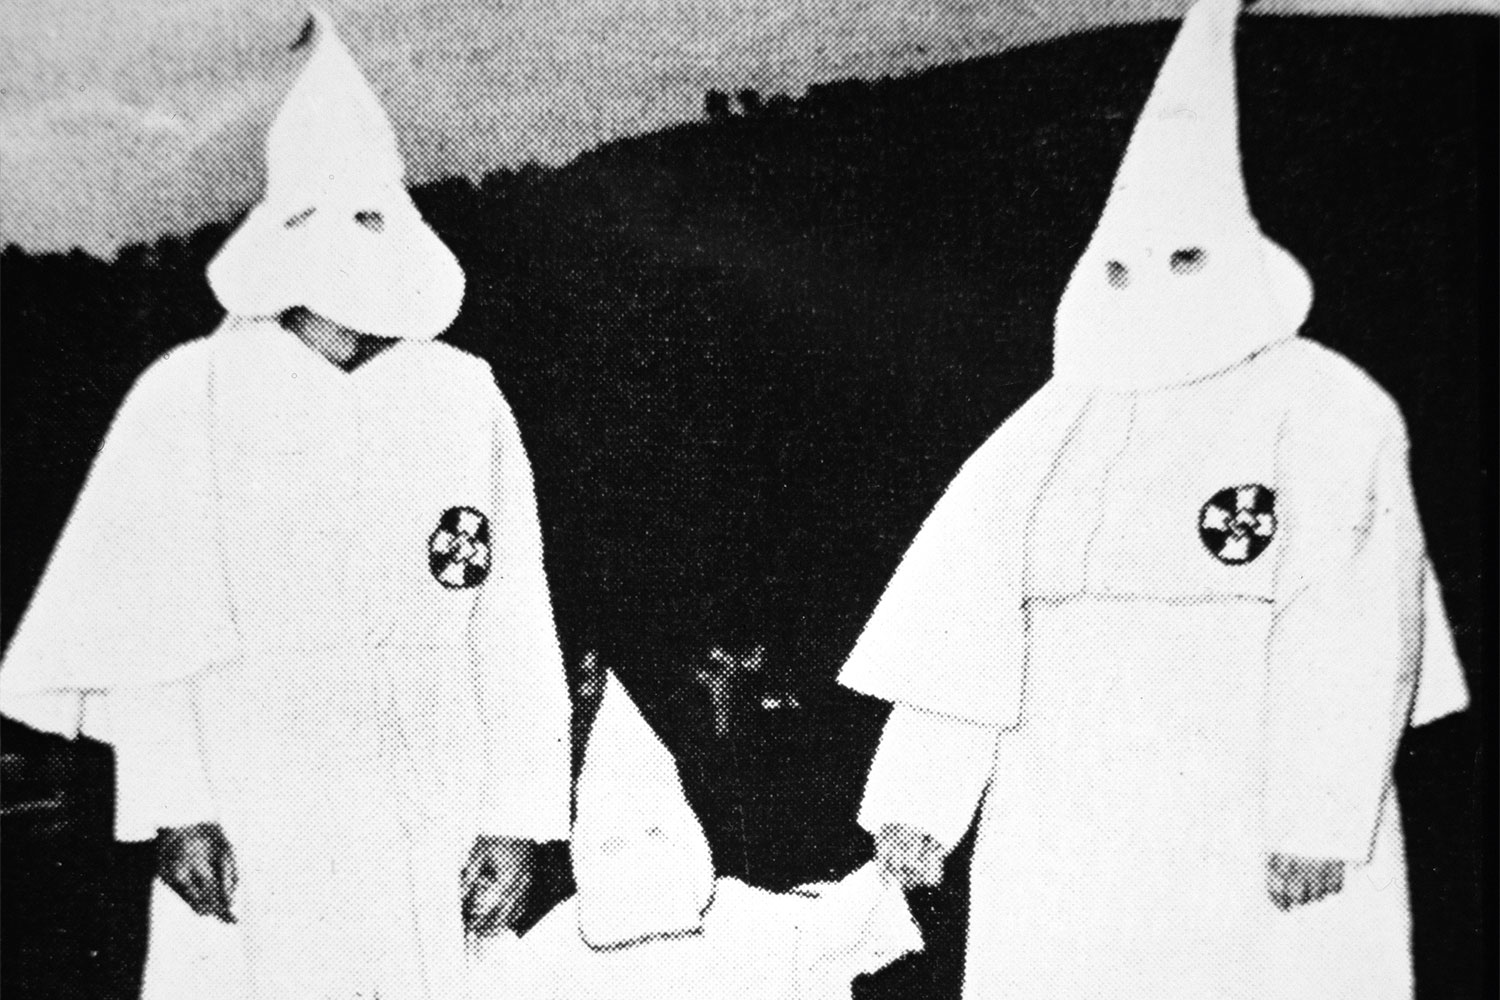 the presence of klu klux klan as described in john grishams the chamber When it comes to essay writing, an in-depth research is a big deal our experienced writers are professional in many fields of knowledge so that they can assist you with virtually any academic task we deliver papers of different types: essays, theses, book reviews, case studies, etc.